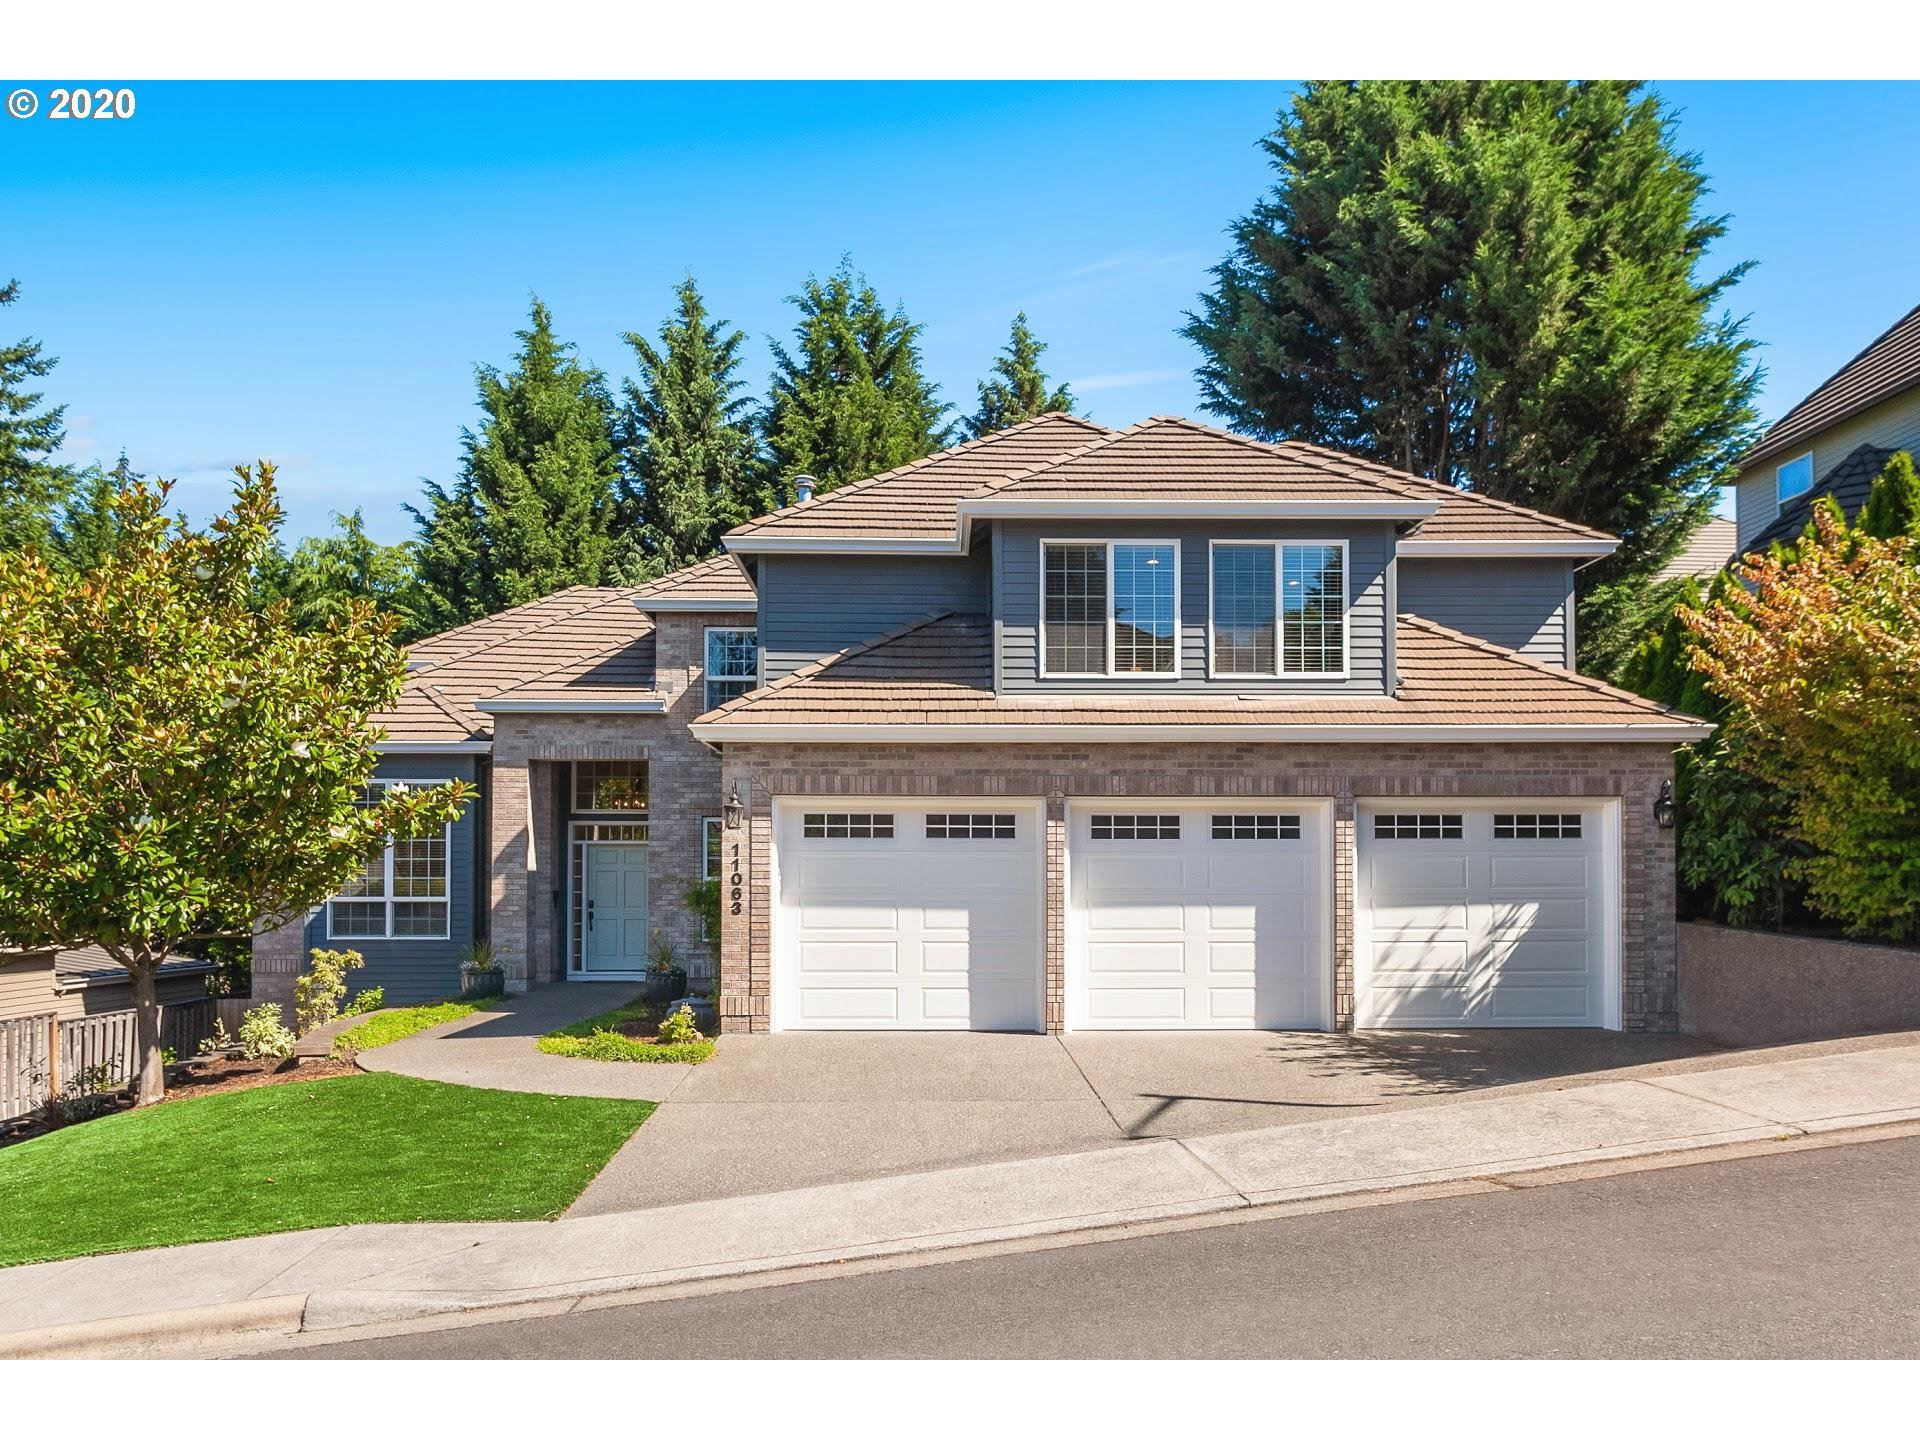 11063 NW MONTREUX LN, Portland, OR 97229 - MLS#: 20446925